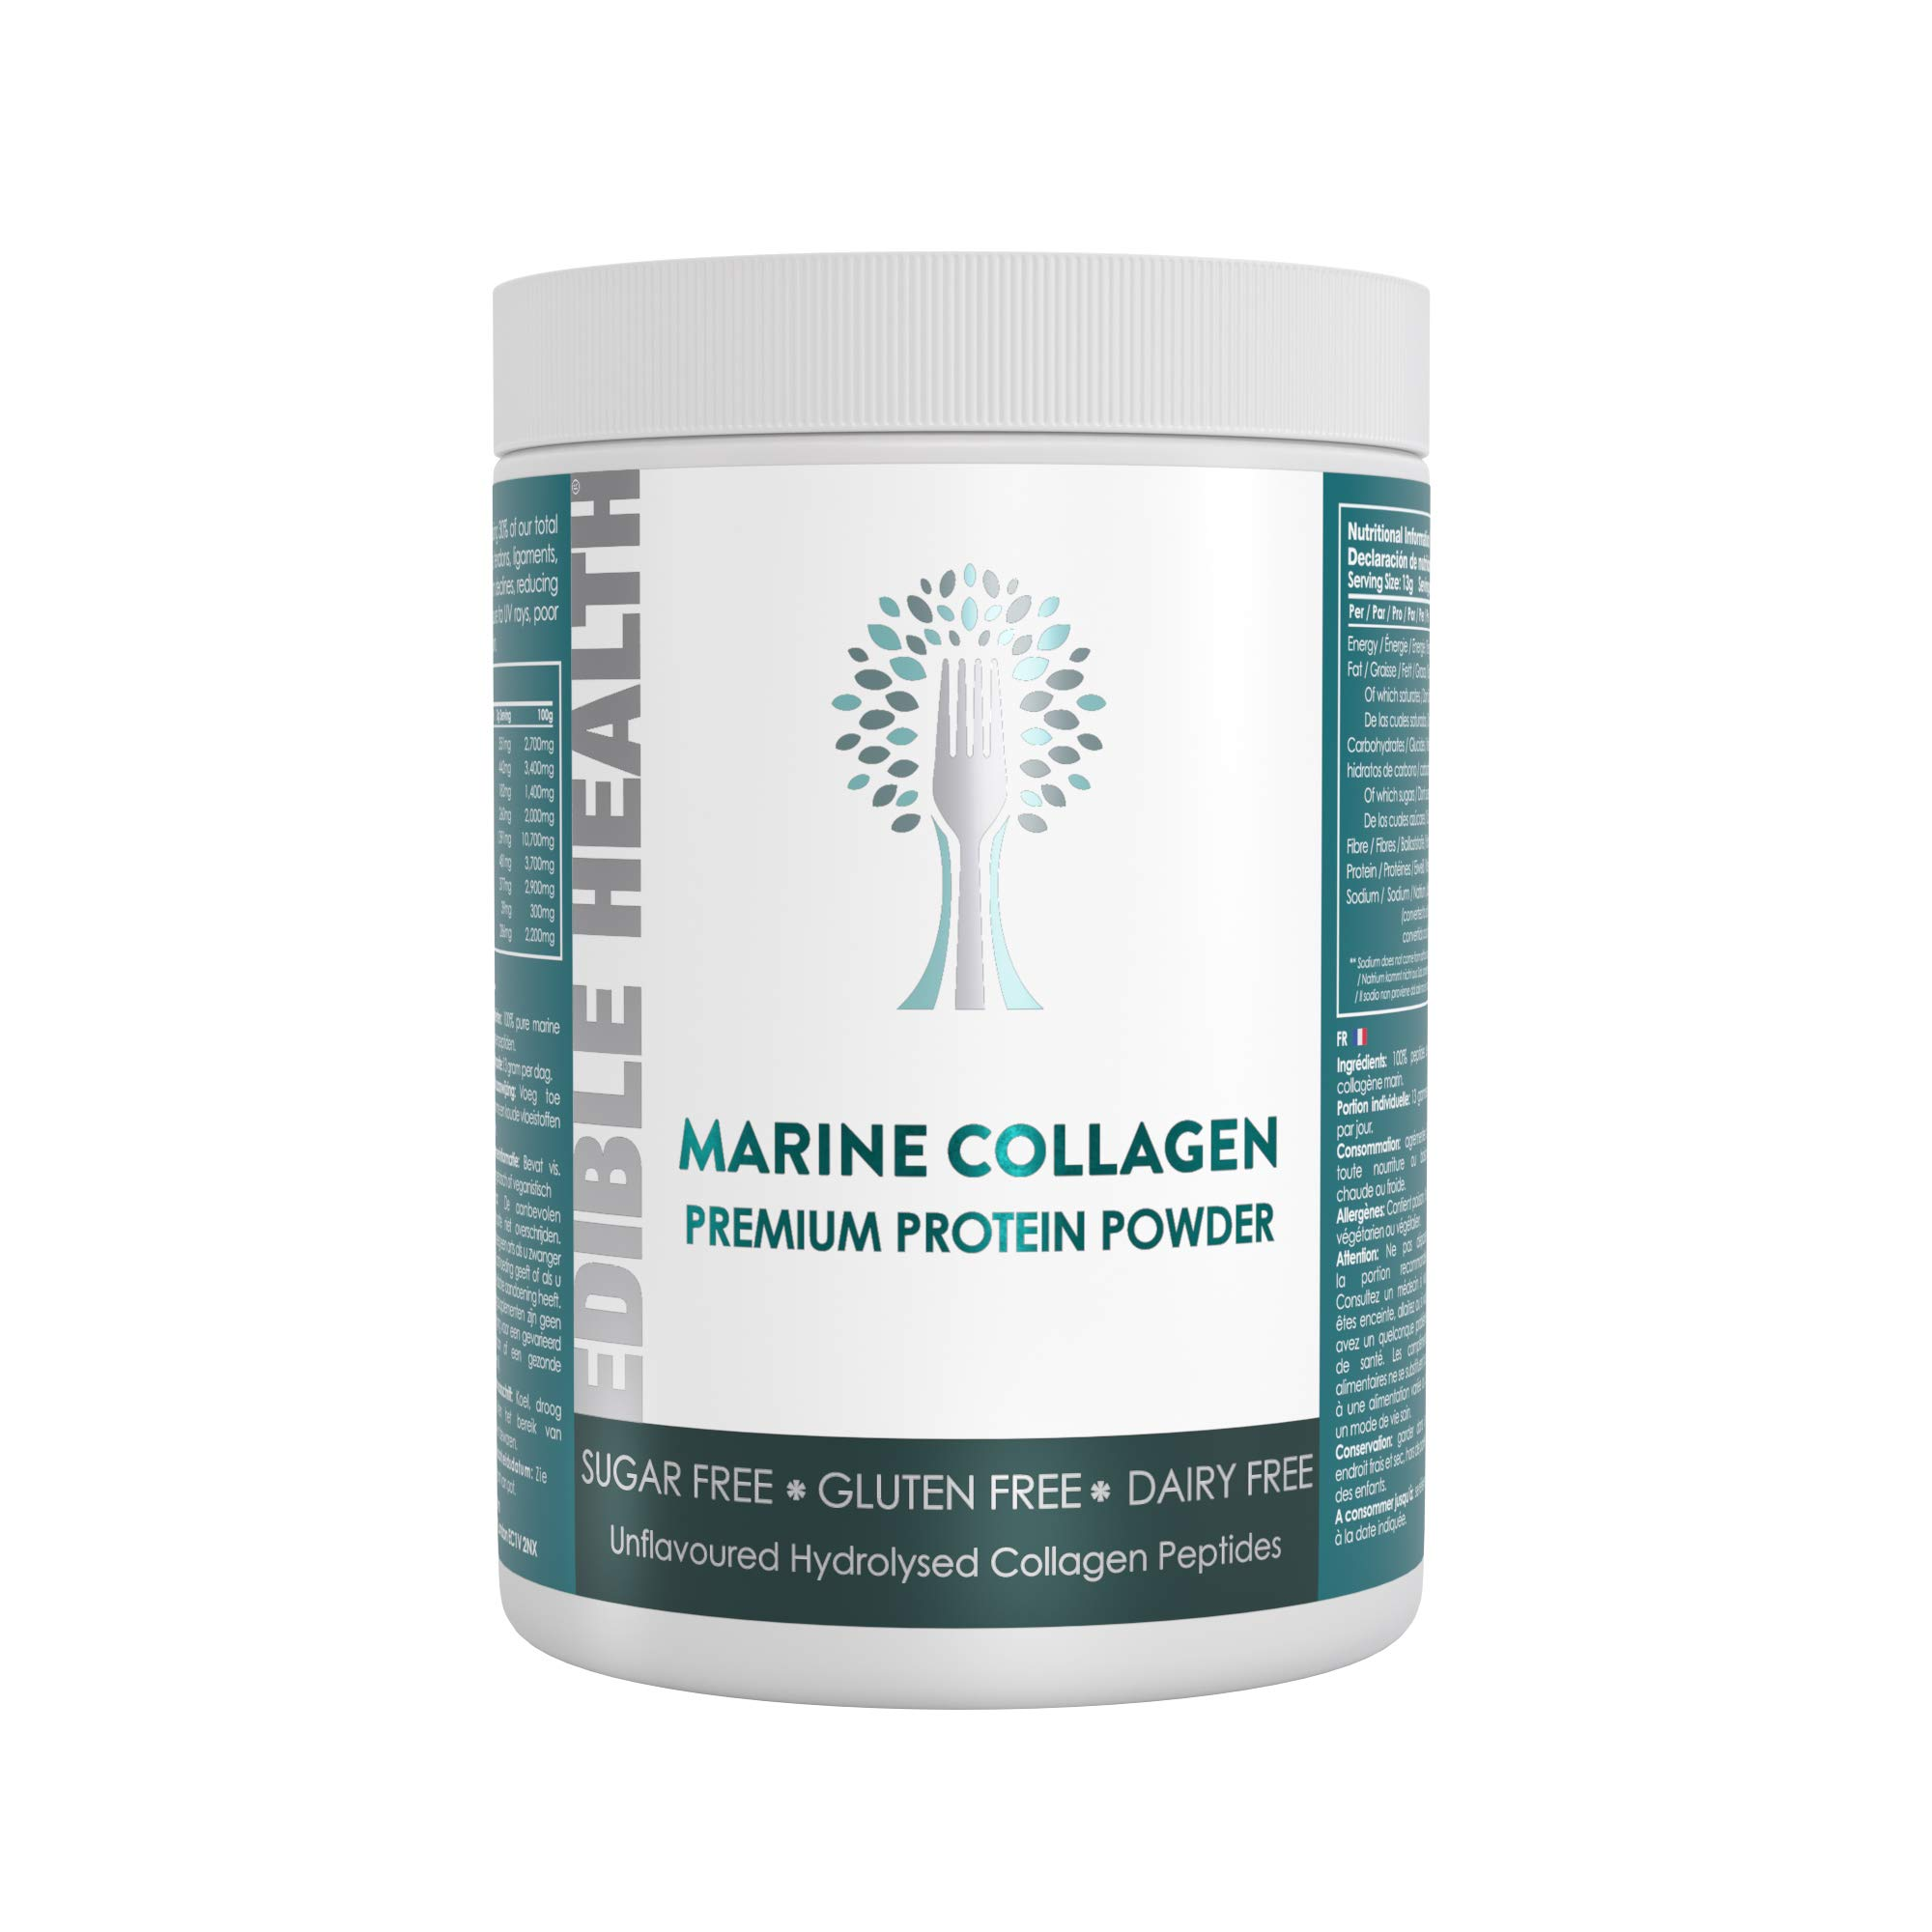 Edible Health Premium Marine Collagen Powder, 400g. Fast Acting Hydrolysed Protein Peptides 13x Stronger Than Capsules + Liquids. with 18 Amino Acids. Made in The EU. 30 Day, £1.16 per Day